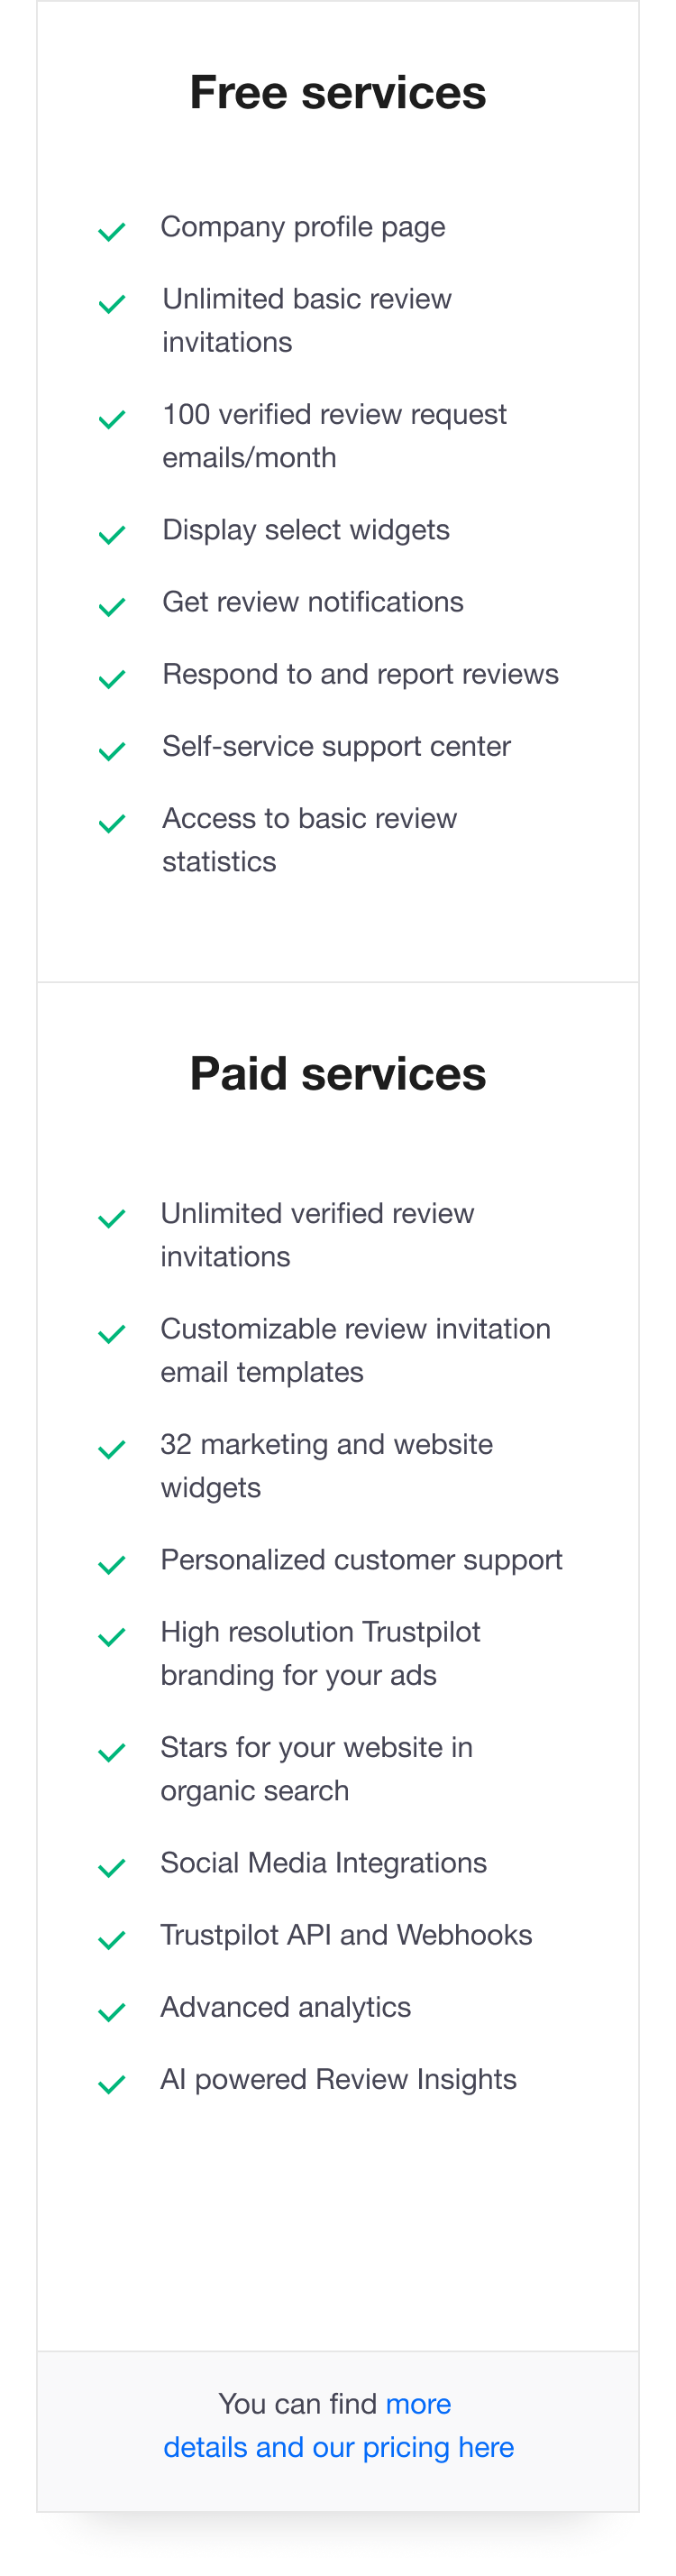 Illustration of a list describing the benefits of Trustpilot's Free and Paid services